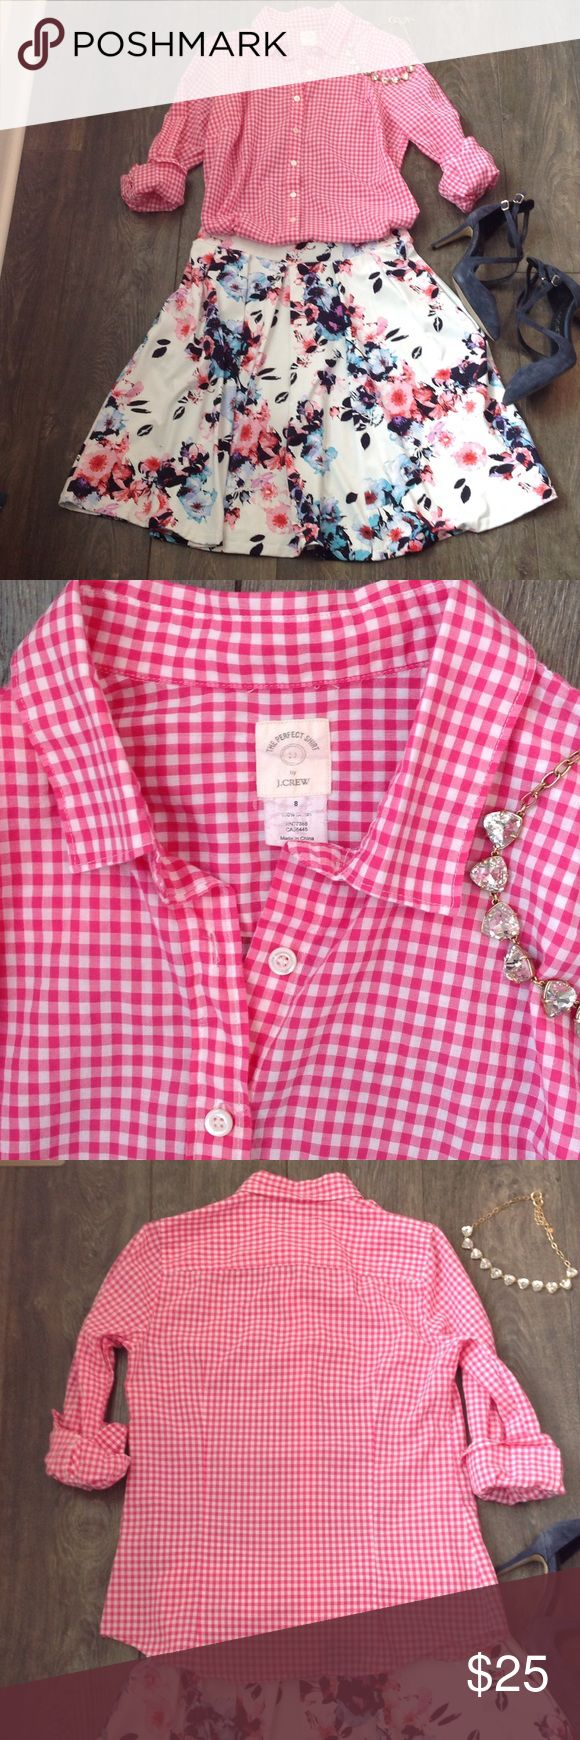 The Perfect Shirt by J. Crew in hot pink gingham EUC, soft and lightweight, 100% cotton J. Crew Tops Button Down Shirts